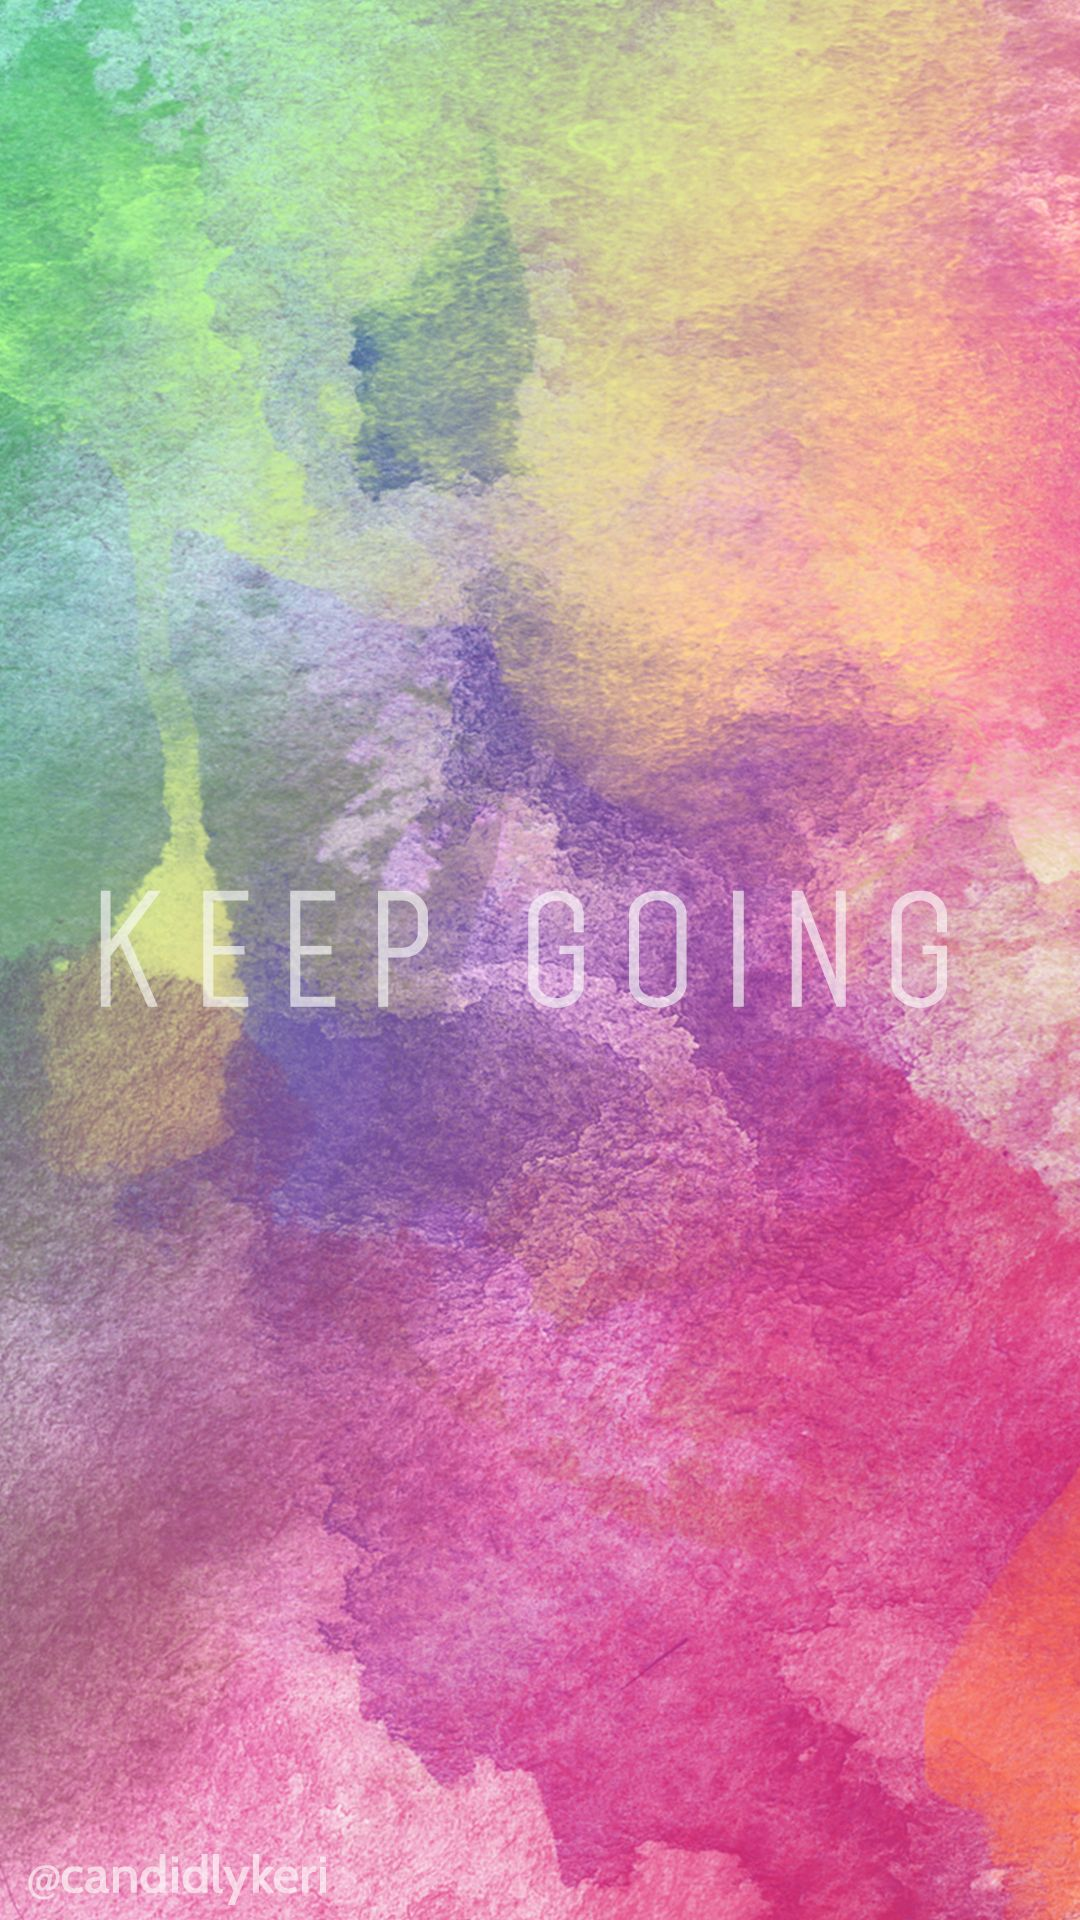 Keep Gong quote colorful watercolor background desktop tie die for free on the blog wallpaper (iphone or android)